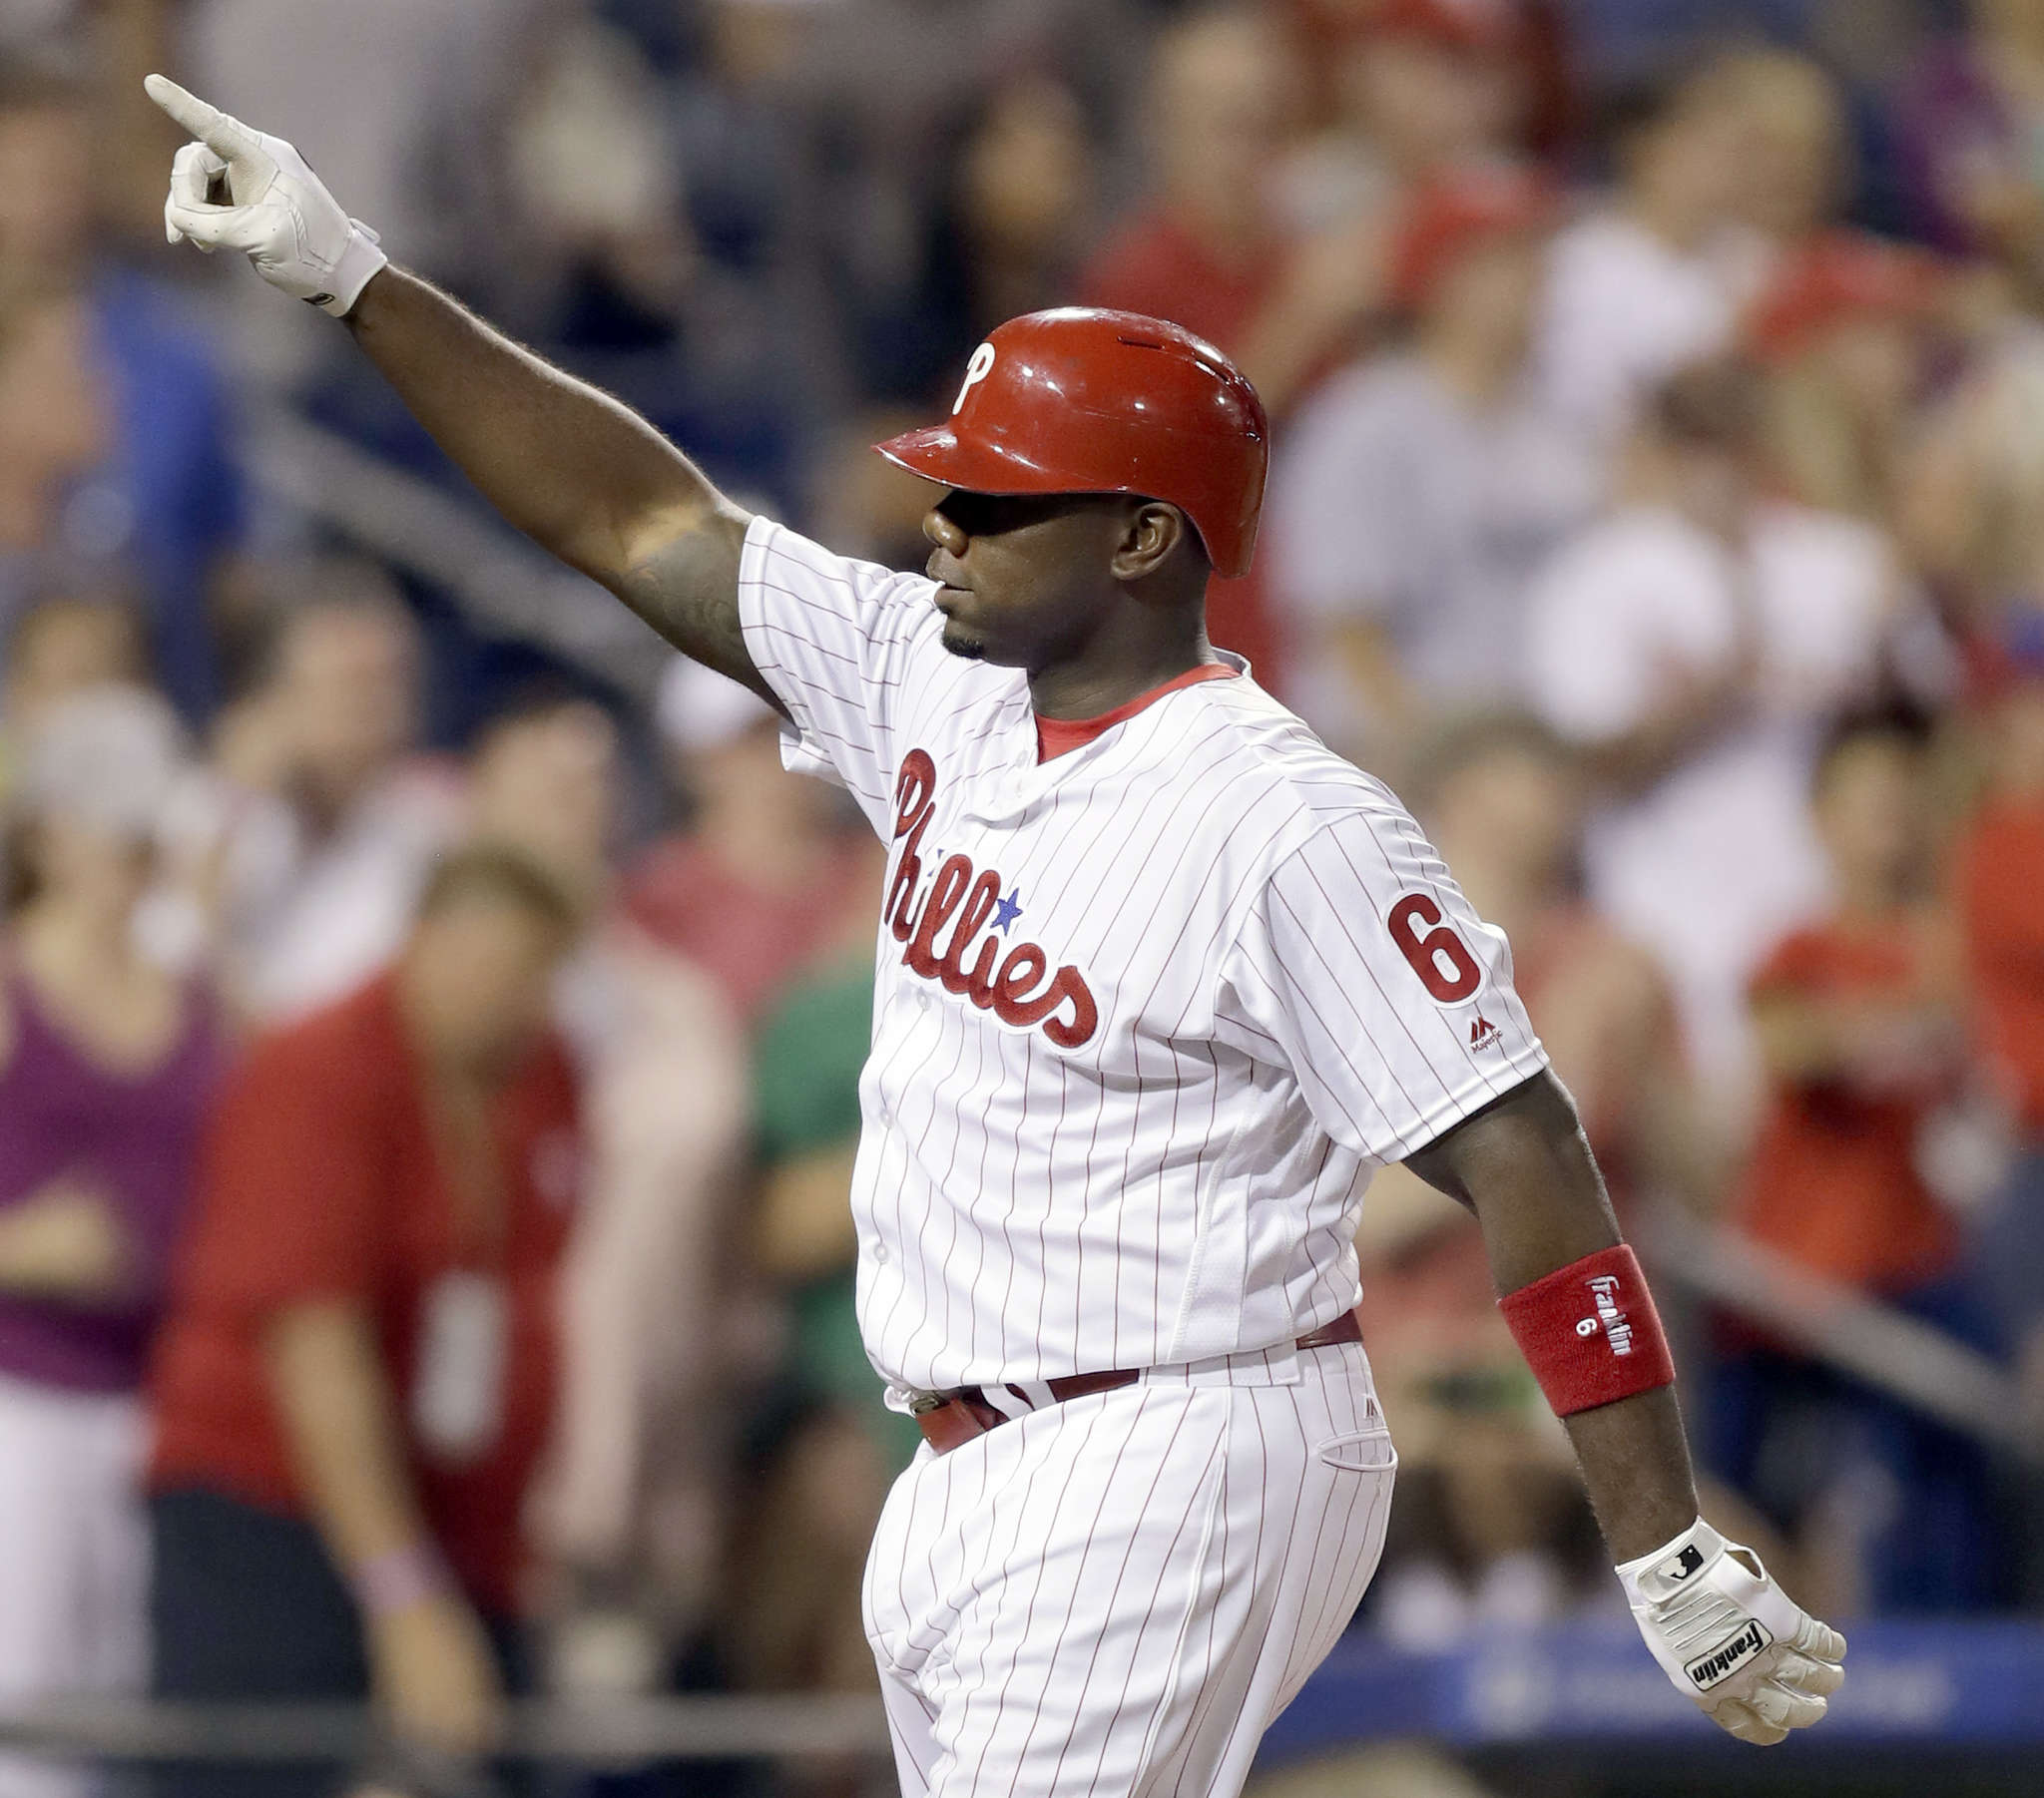 Phillies´ Ryan Howard celebrates a homer against the Giants in August. YONG KIM / Staff Photographer